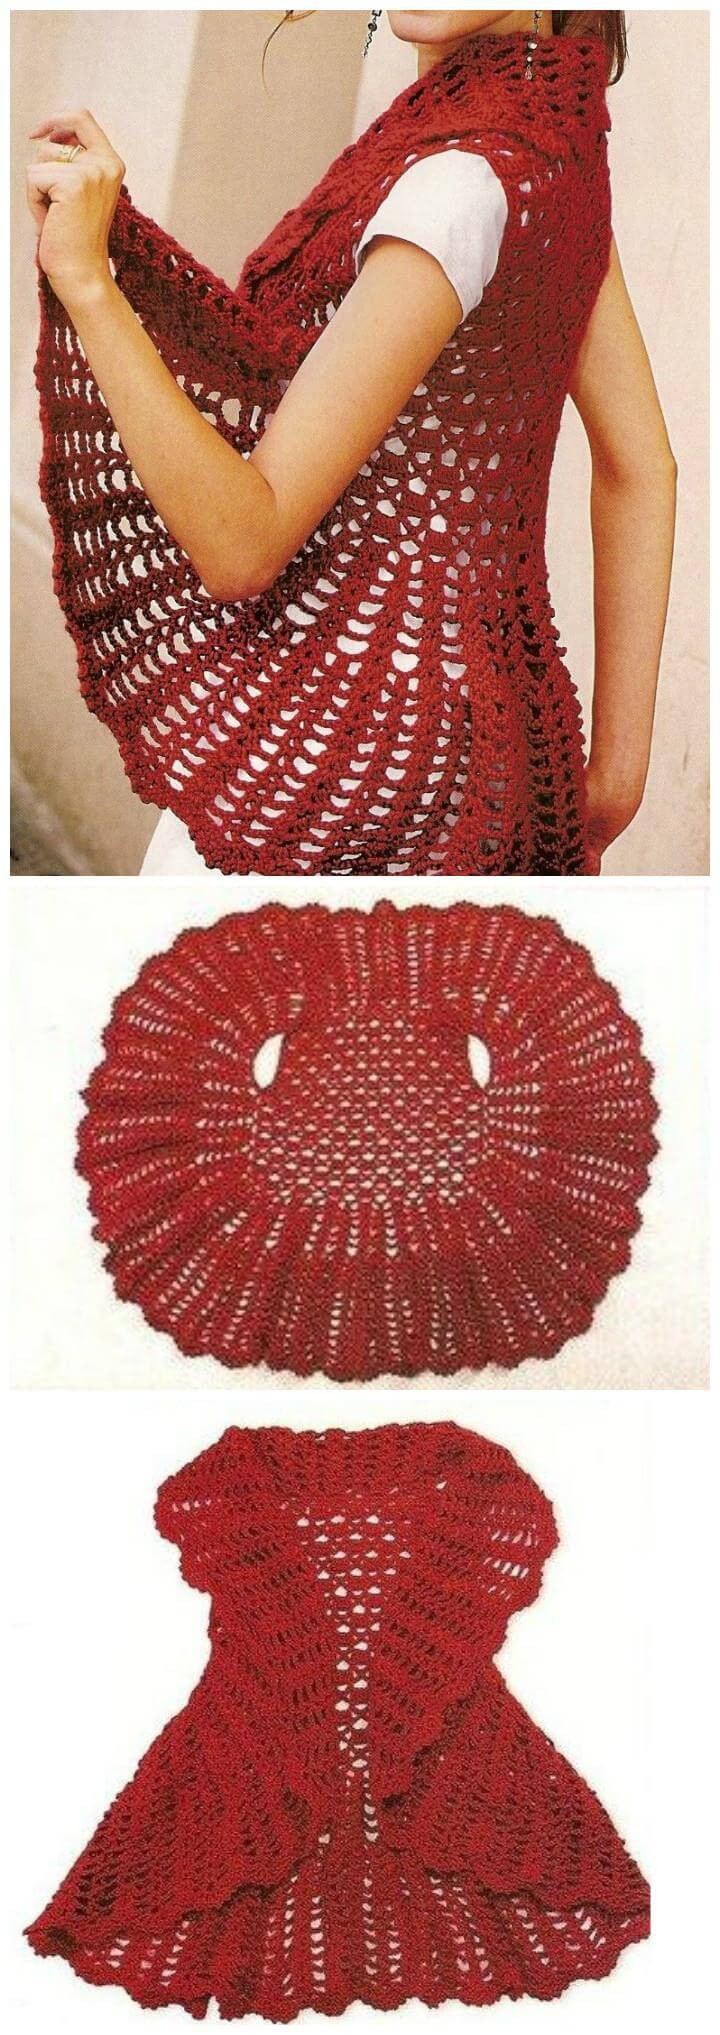 Beautiful 12 Free Crochet Patterns for Circular Vest Jacket Crochet Circular Vest Of Delightful 46 Models Crochet Circular Vest